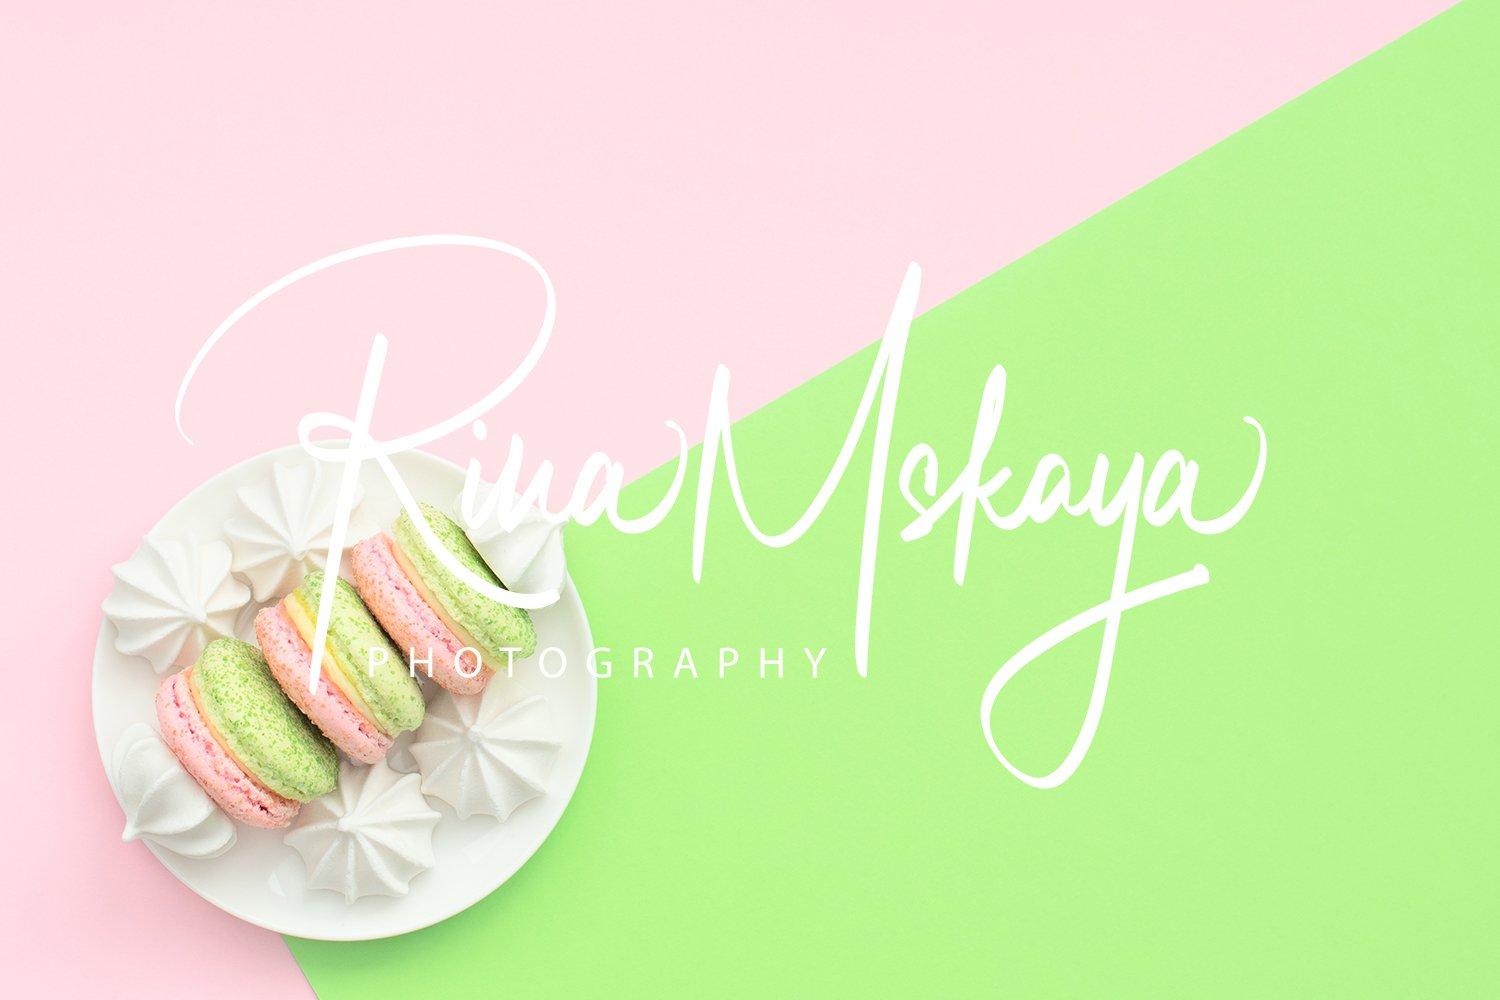 Delicious macarons with white merengues on white plate example image 1